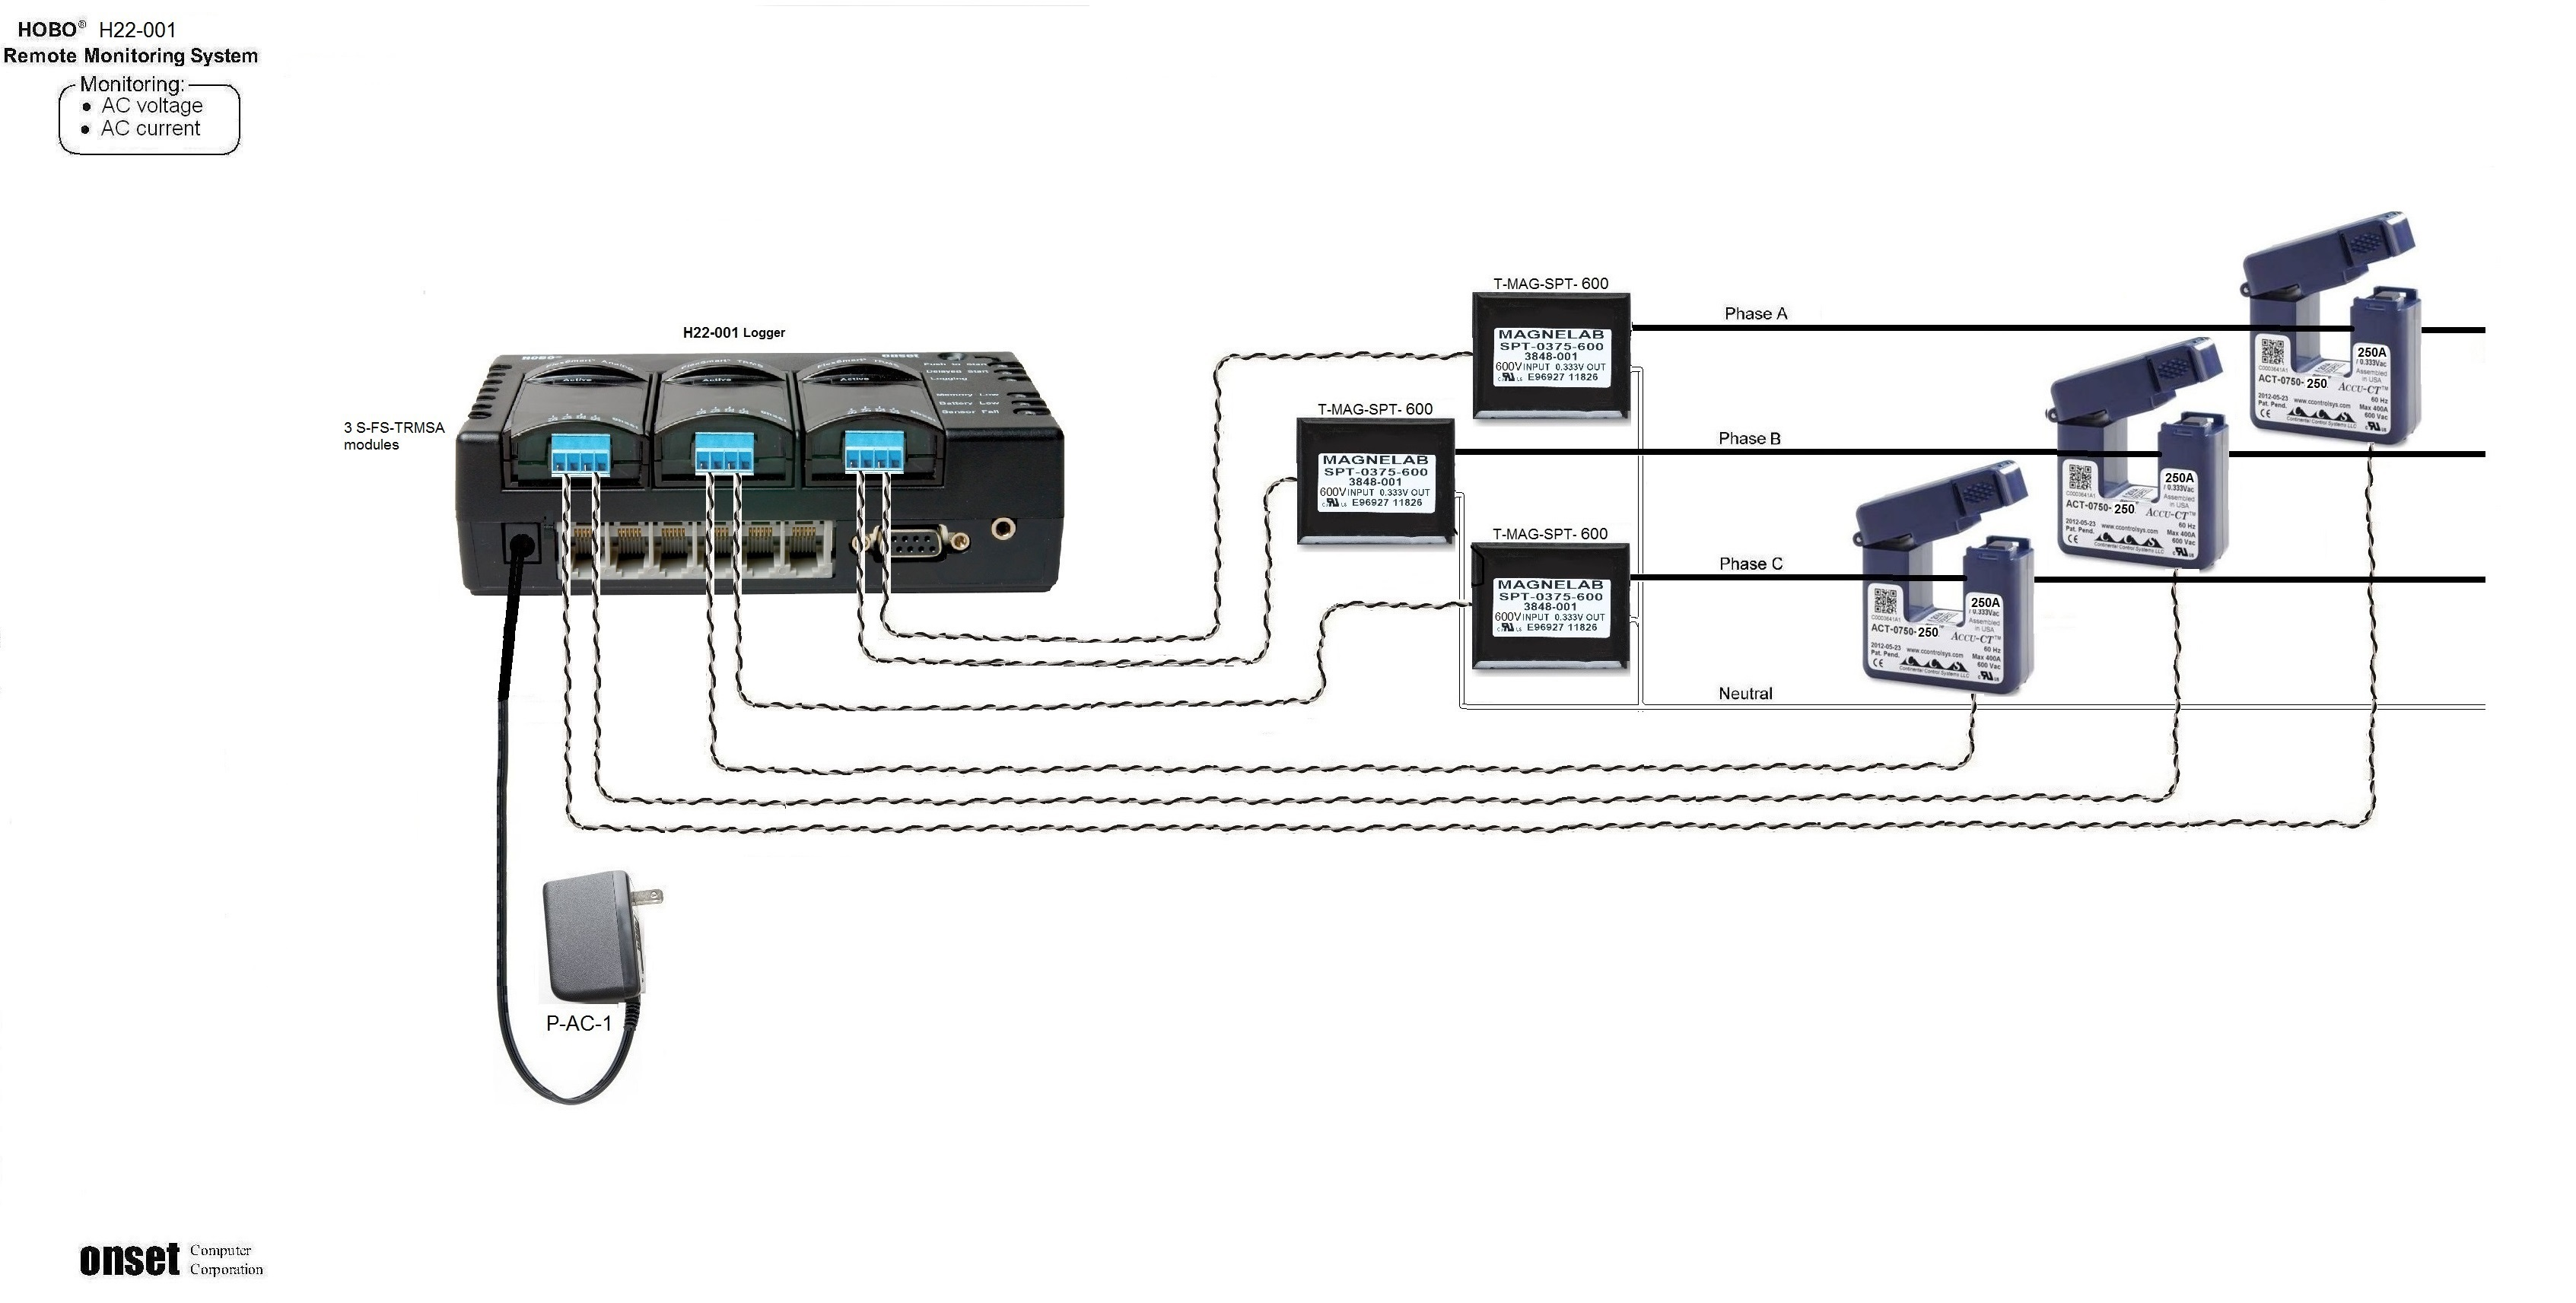 Wiring Diagram Monitoring 480v 3 Phase Ac Voltage And Current H22 Application Accurrent Acvolt480 56824 Kb